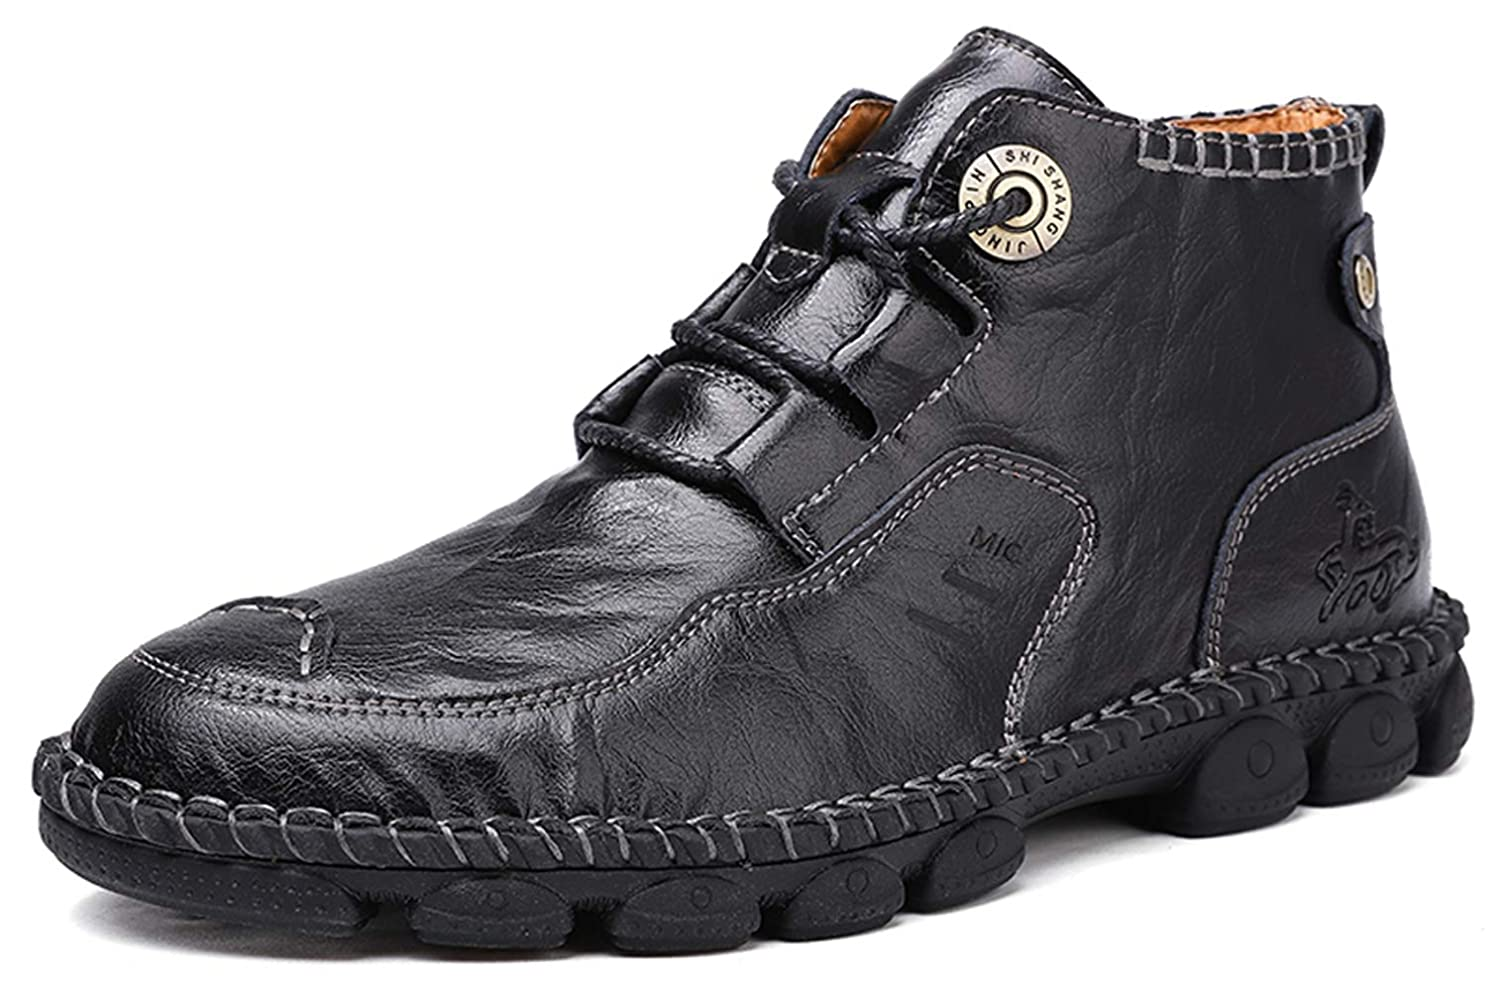 Steampunk Boots & Shoes, Heels & Flats Honeystore Mens British Martin Boots High-top Leather Motorcycle Shoes Lace-up Booties $45.99 AT vintagedancer.com